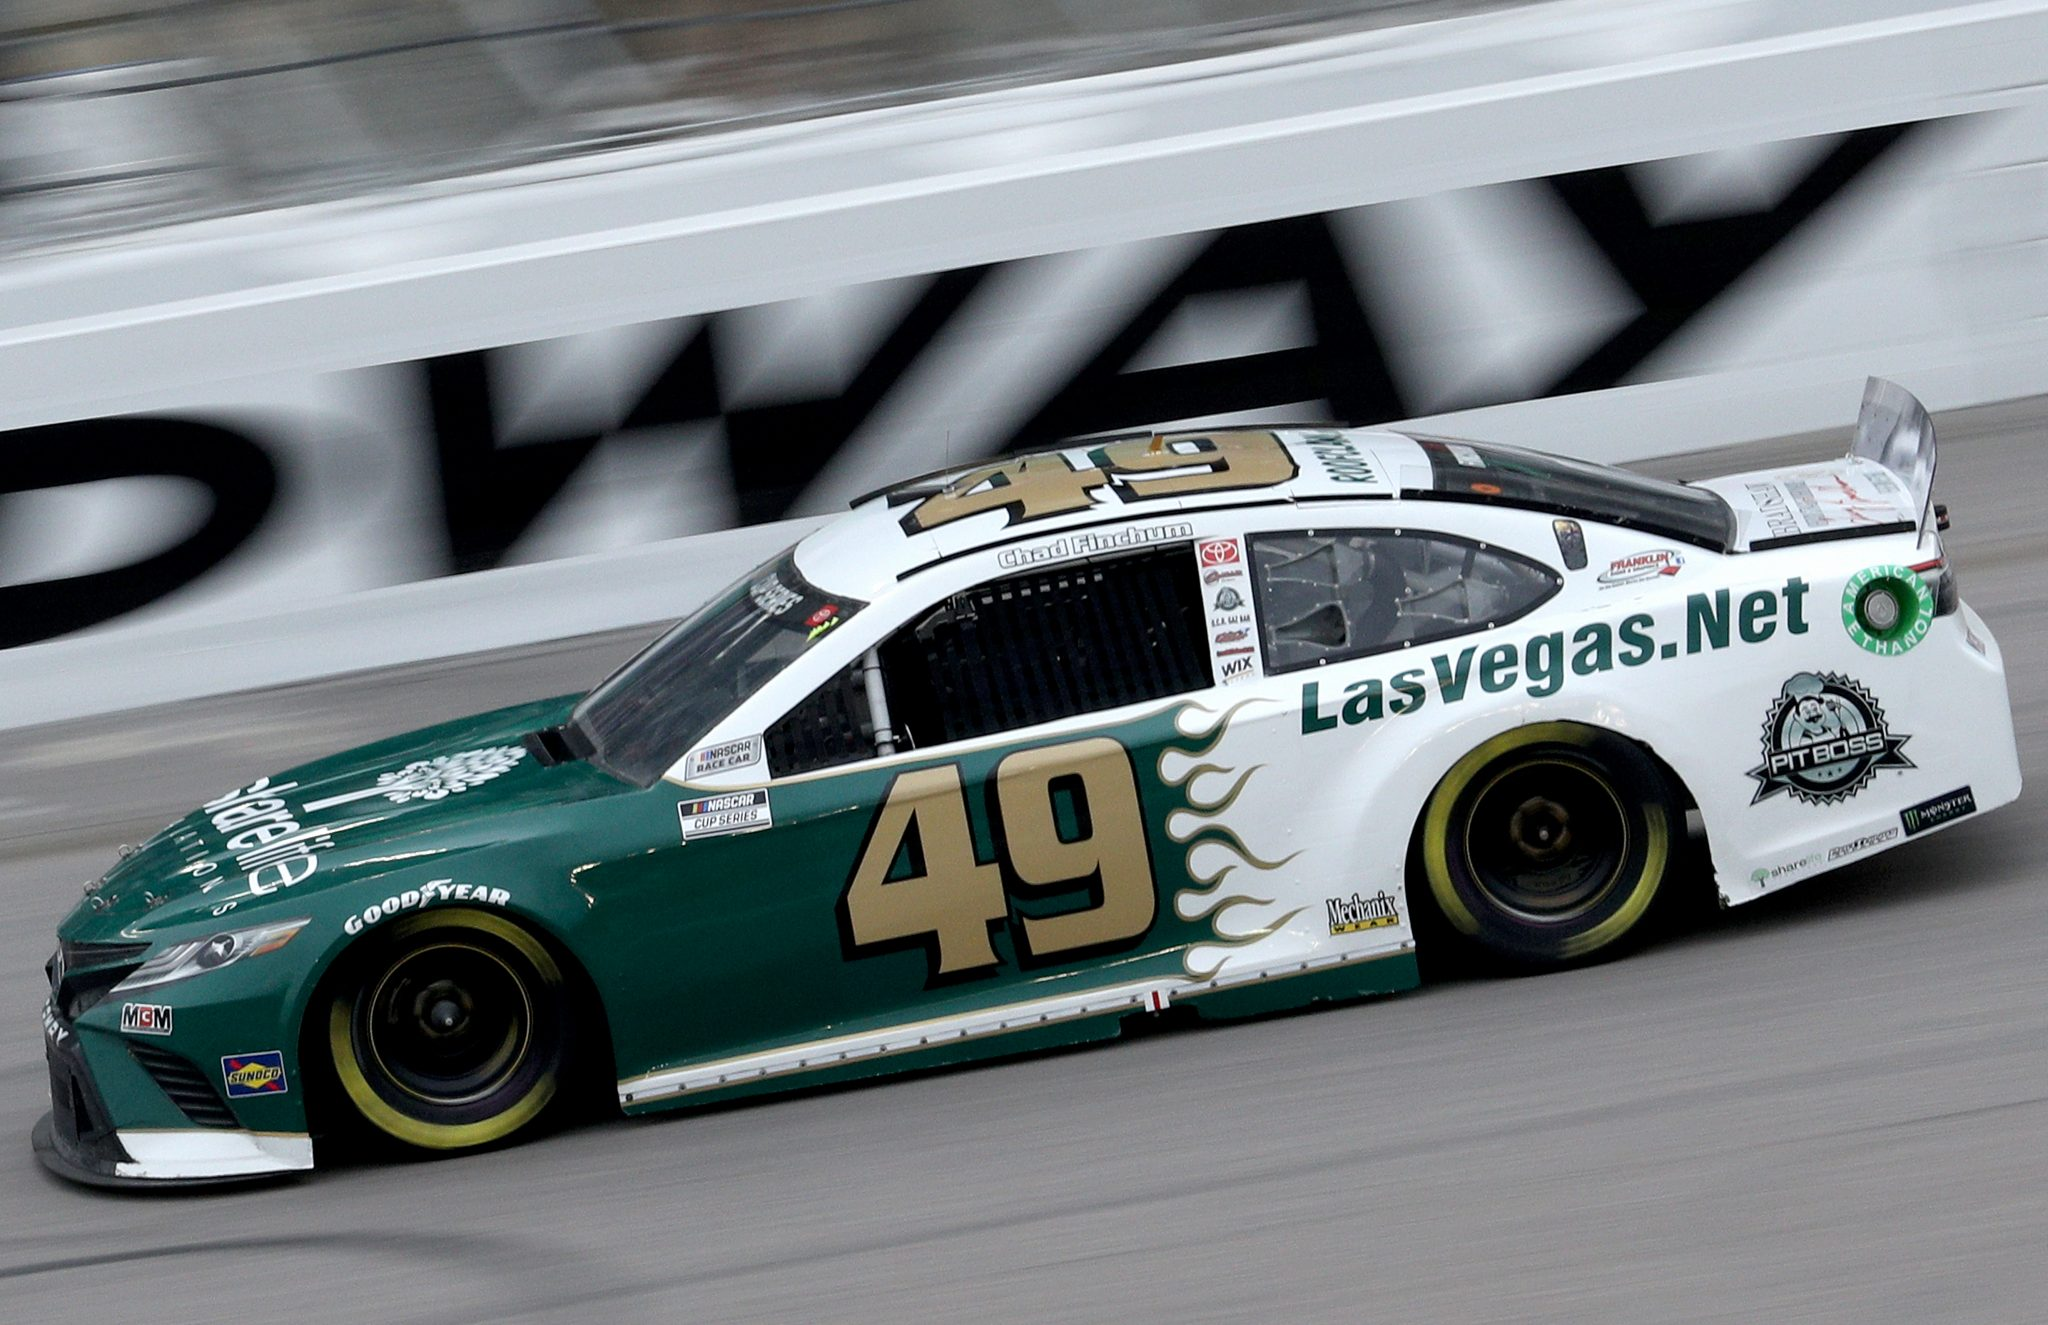 KANSAS CITY, KANSAS - OCTOBER 18: Chad Finchum, driver of the #49 LasVegas.net Toyota, drives during the NASCAR Cup Series Hollywood Casino 400 at Kansas Speedway on October 18, 2020 in Kansas City, Kansas. (Photo by Chris Graythen/Getty Images) | Getty Images